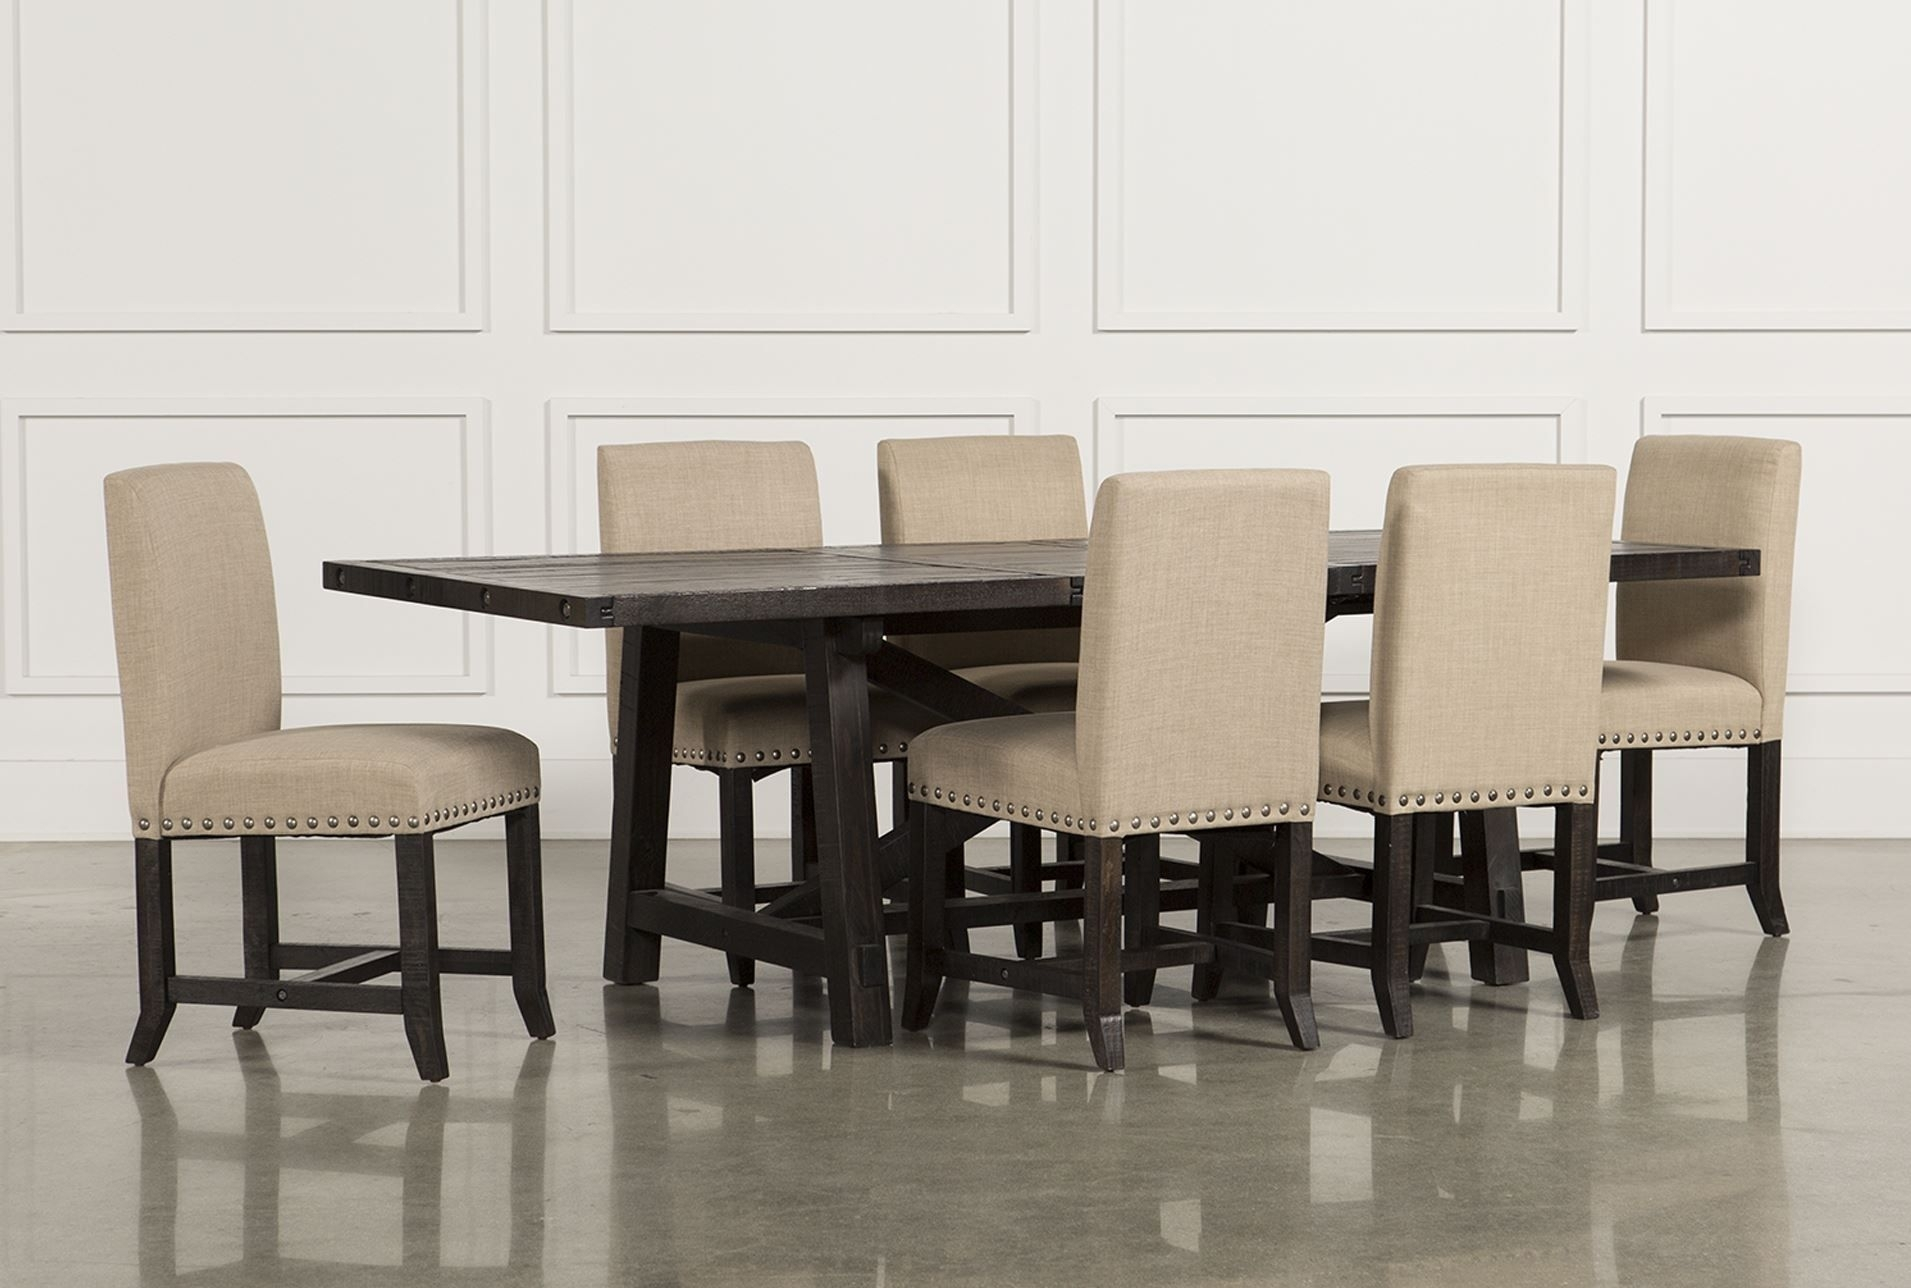 Jaxon 7 Piece Rectangle Dining Set W/upholstered Chairs | For The For Recent Combs 7 Piece Dining Sets With Mindy Slipcovered Chairs (View 4 of 20)